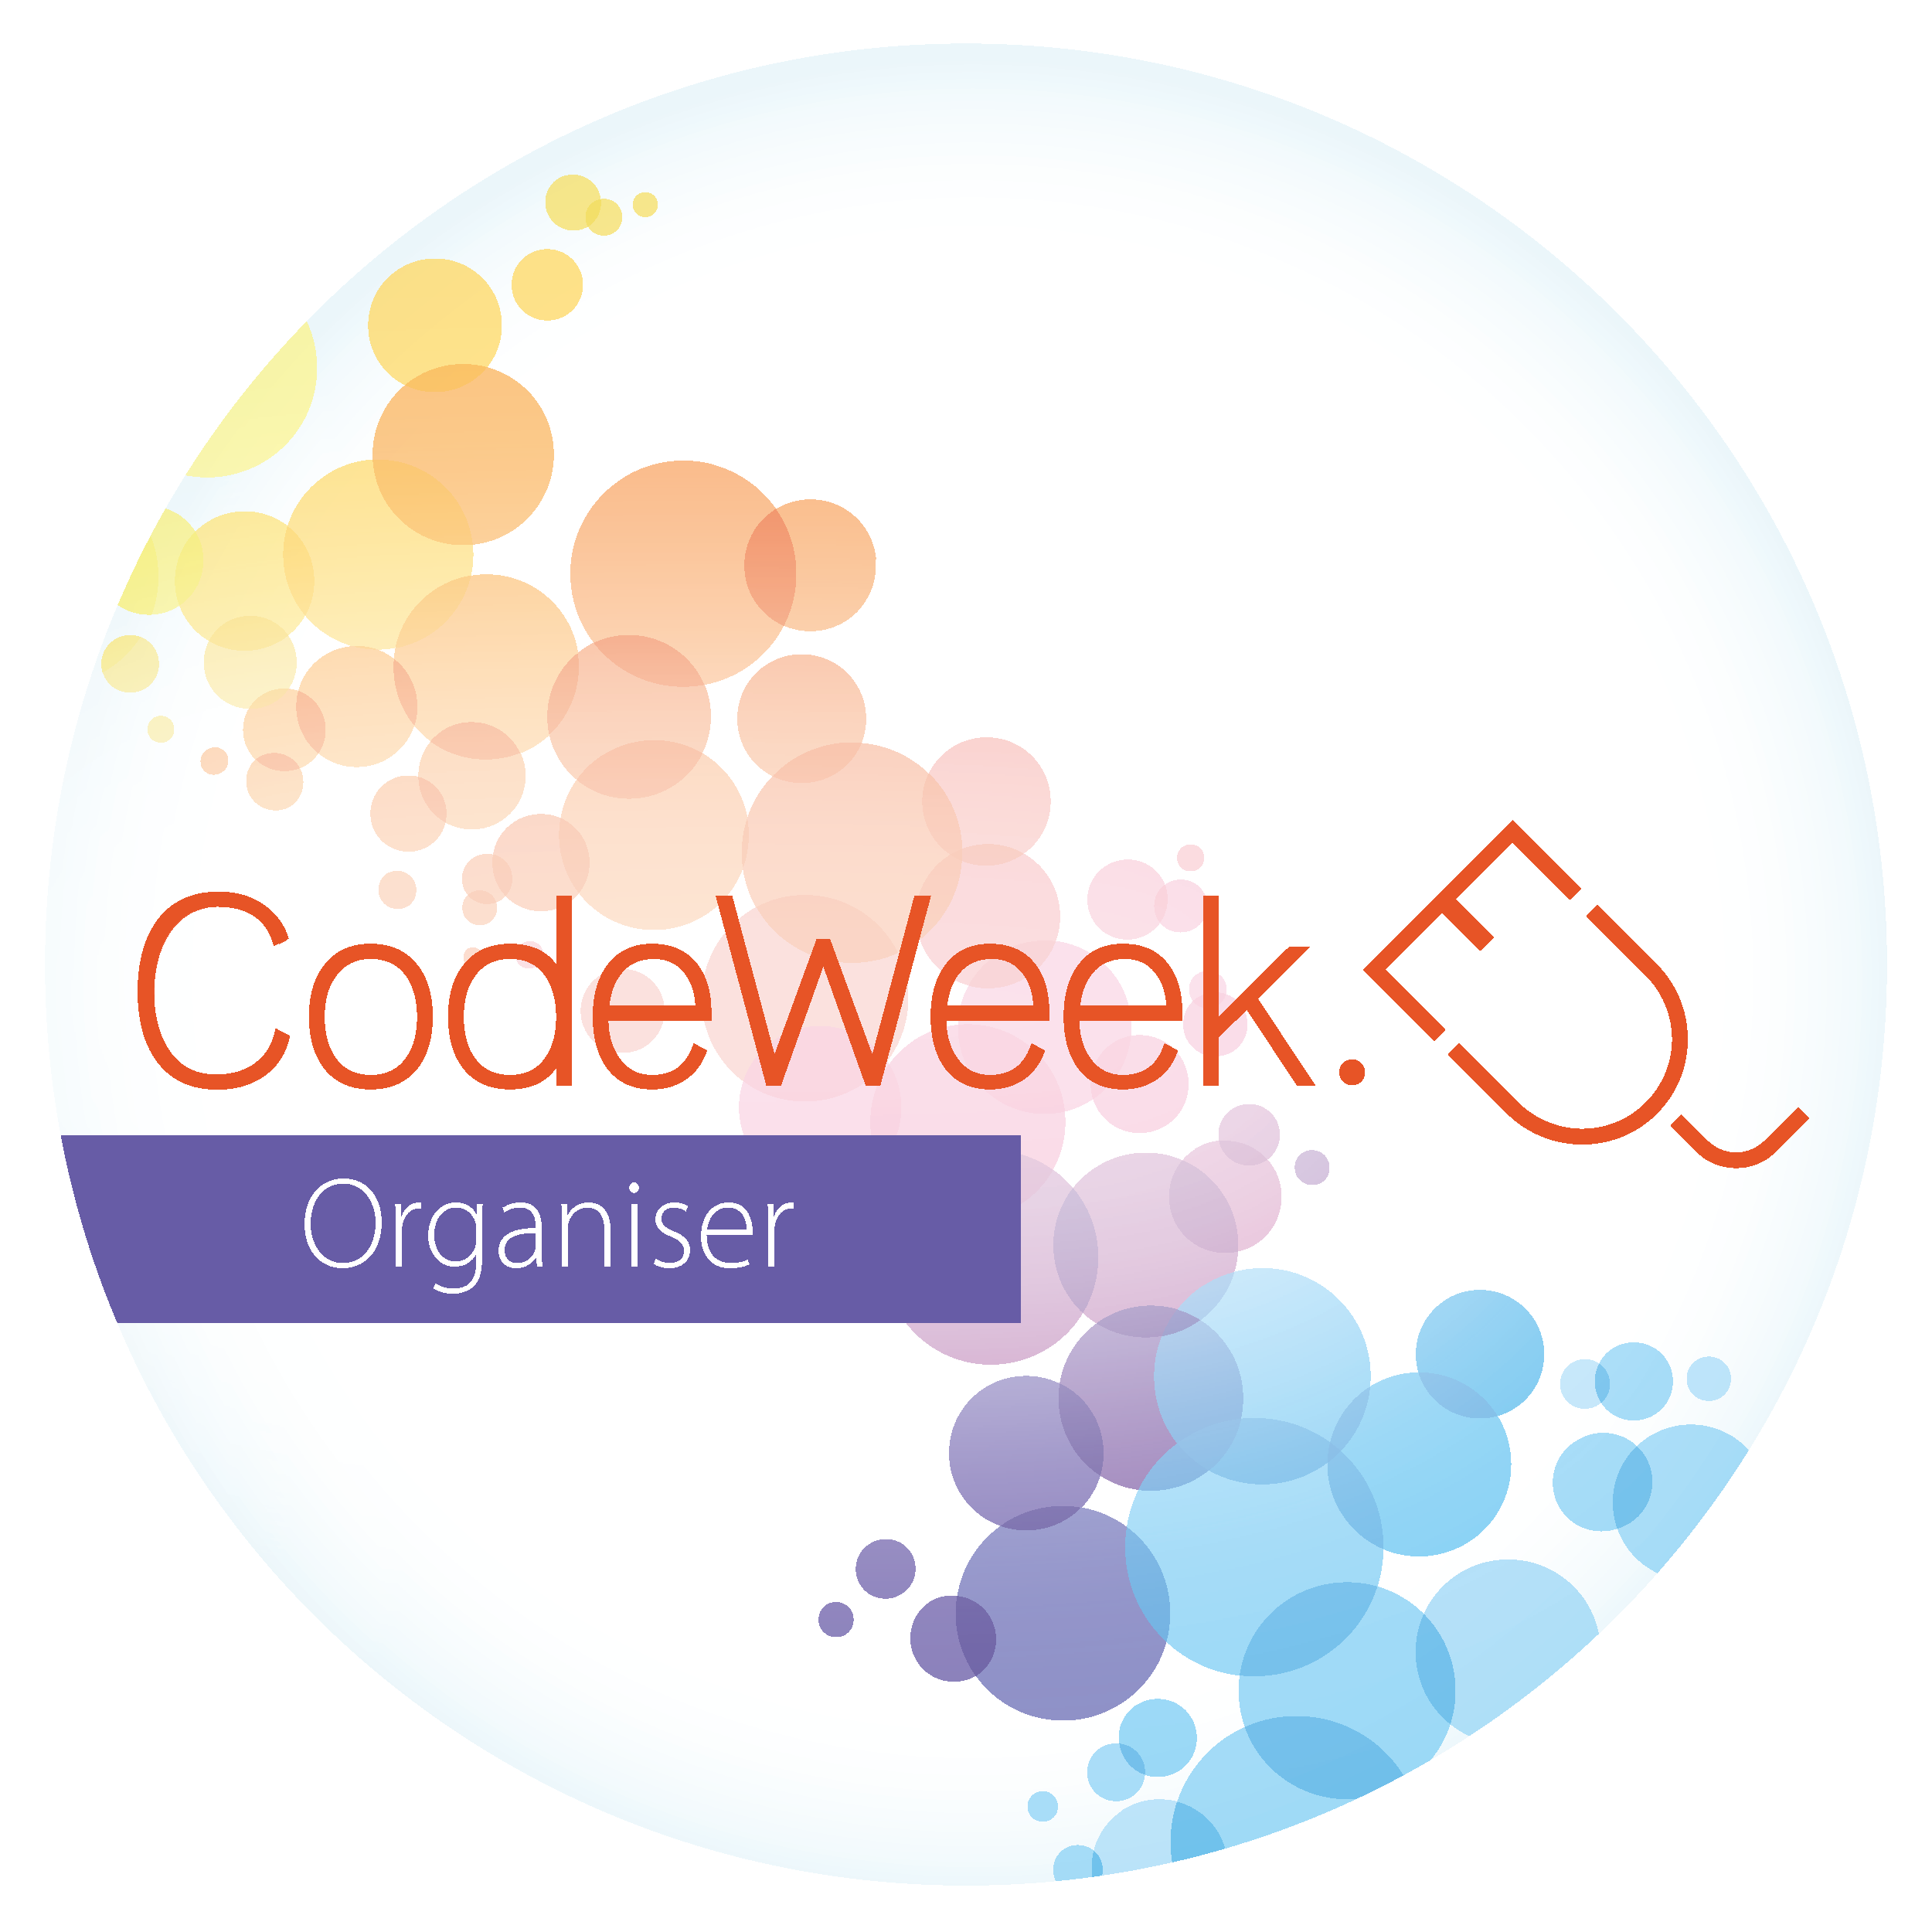 codeweek badge 2019